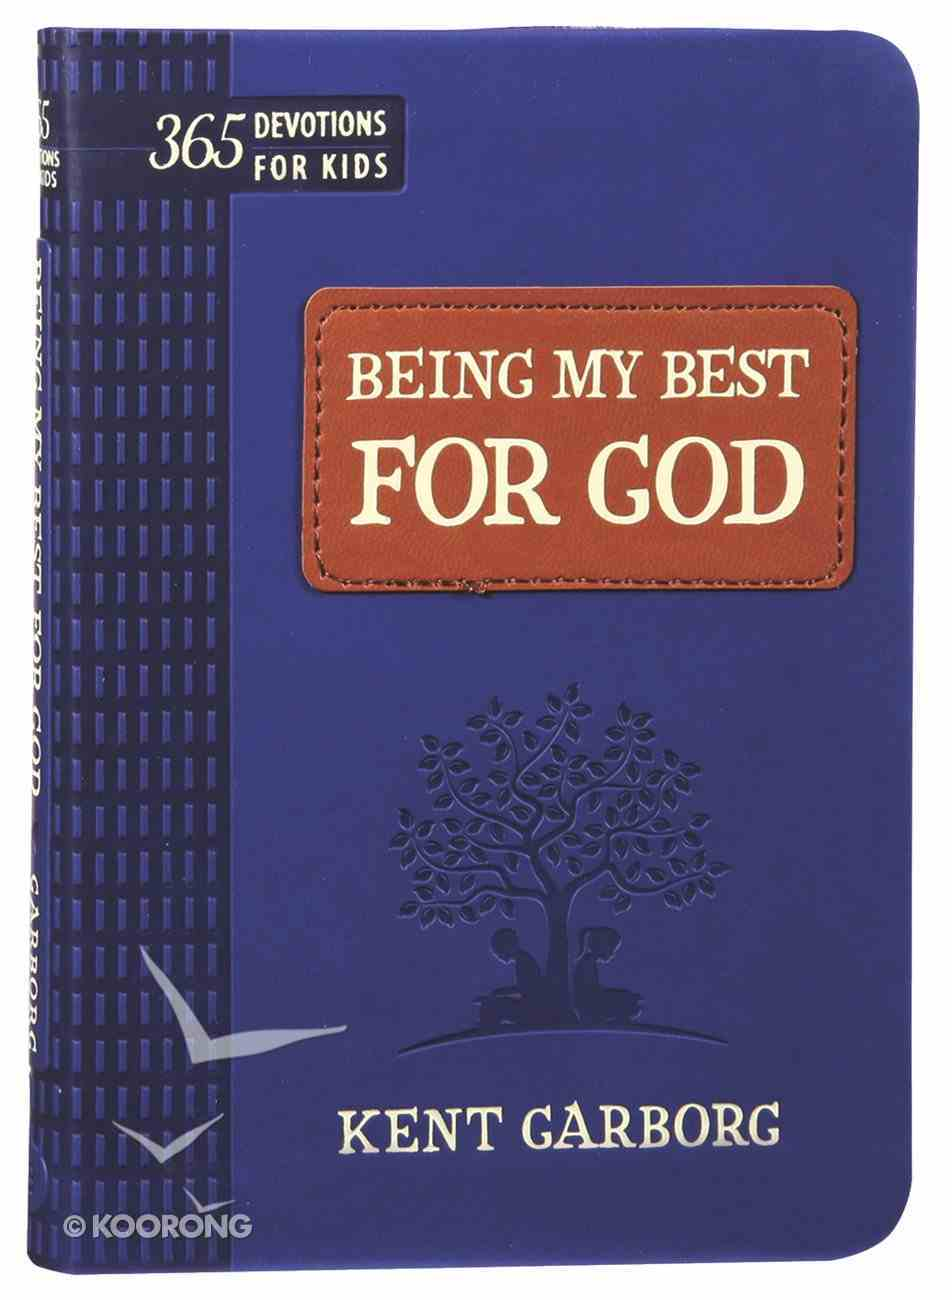 Being My Best For God: 365 Devotions For Kids Imitation Leather